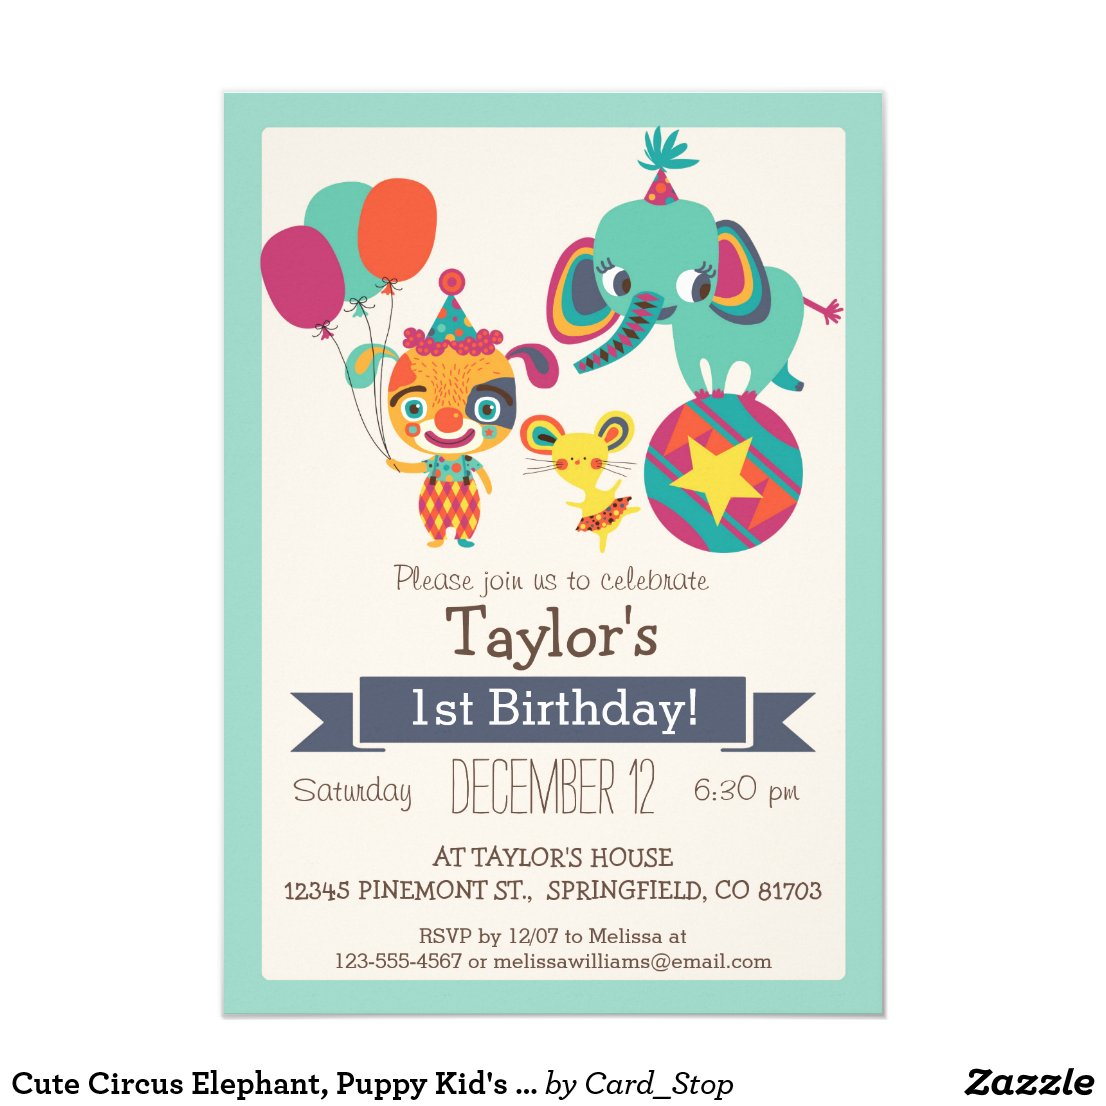 Cute Circus Elephant, Puppy Kid's Birthday Party Card